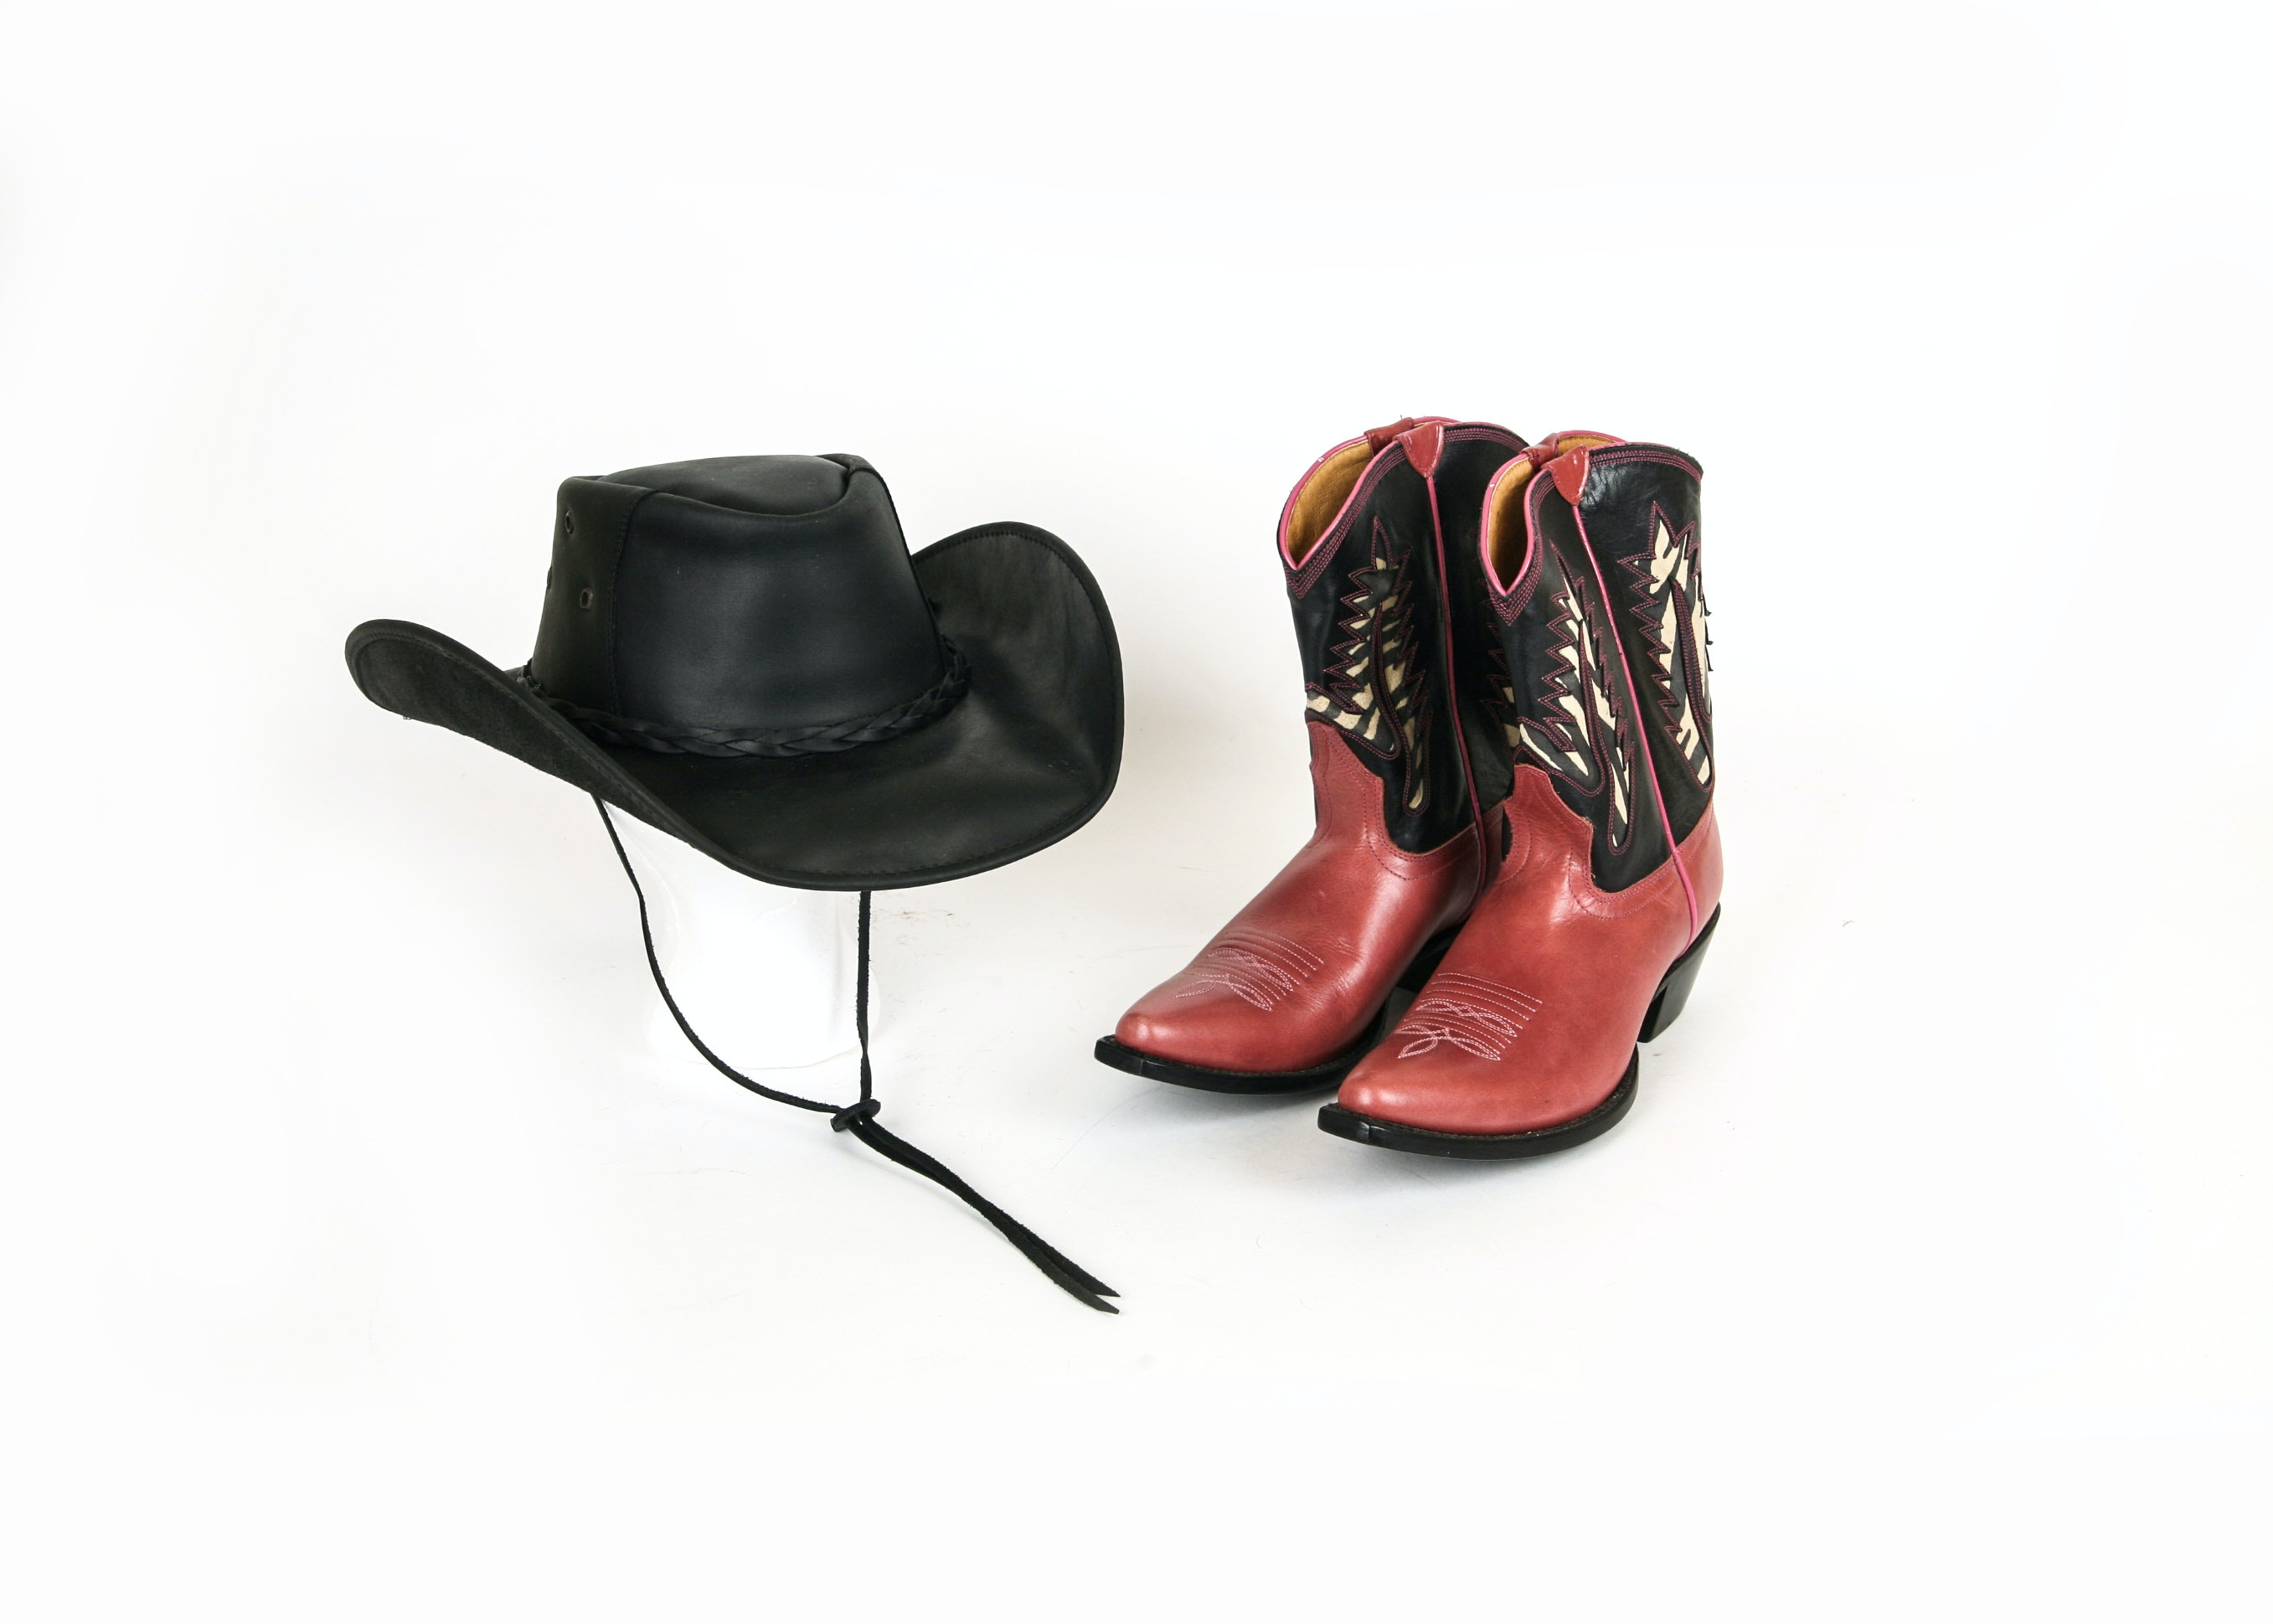 Pair of Johnny Ringo Ladies Boots and Cavender's Hat